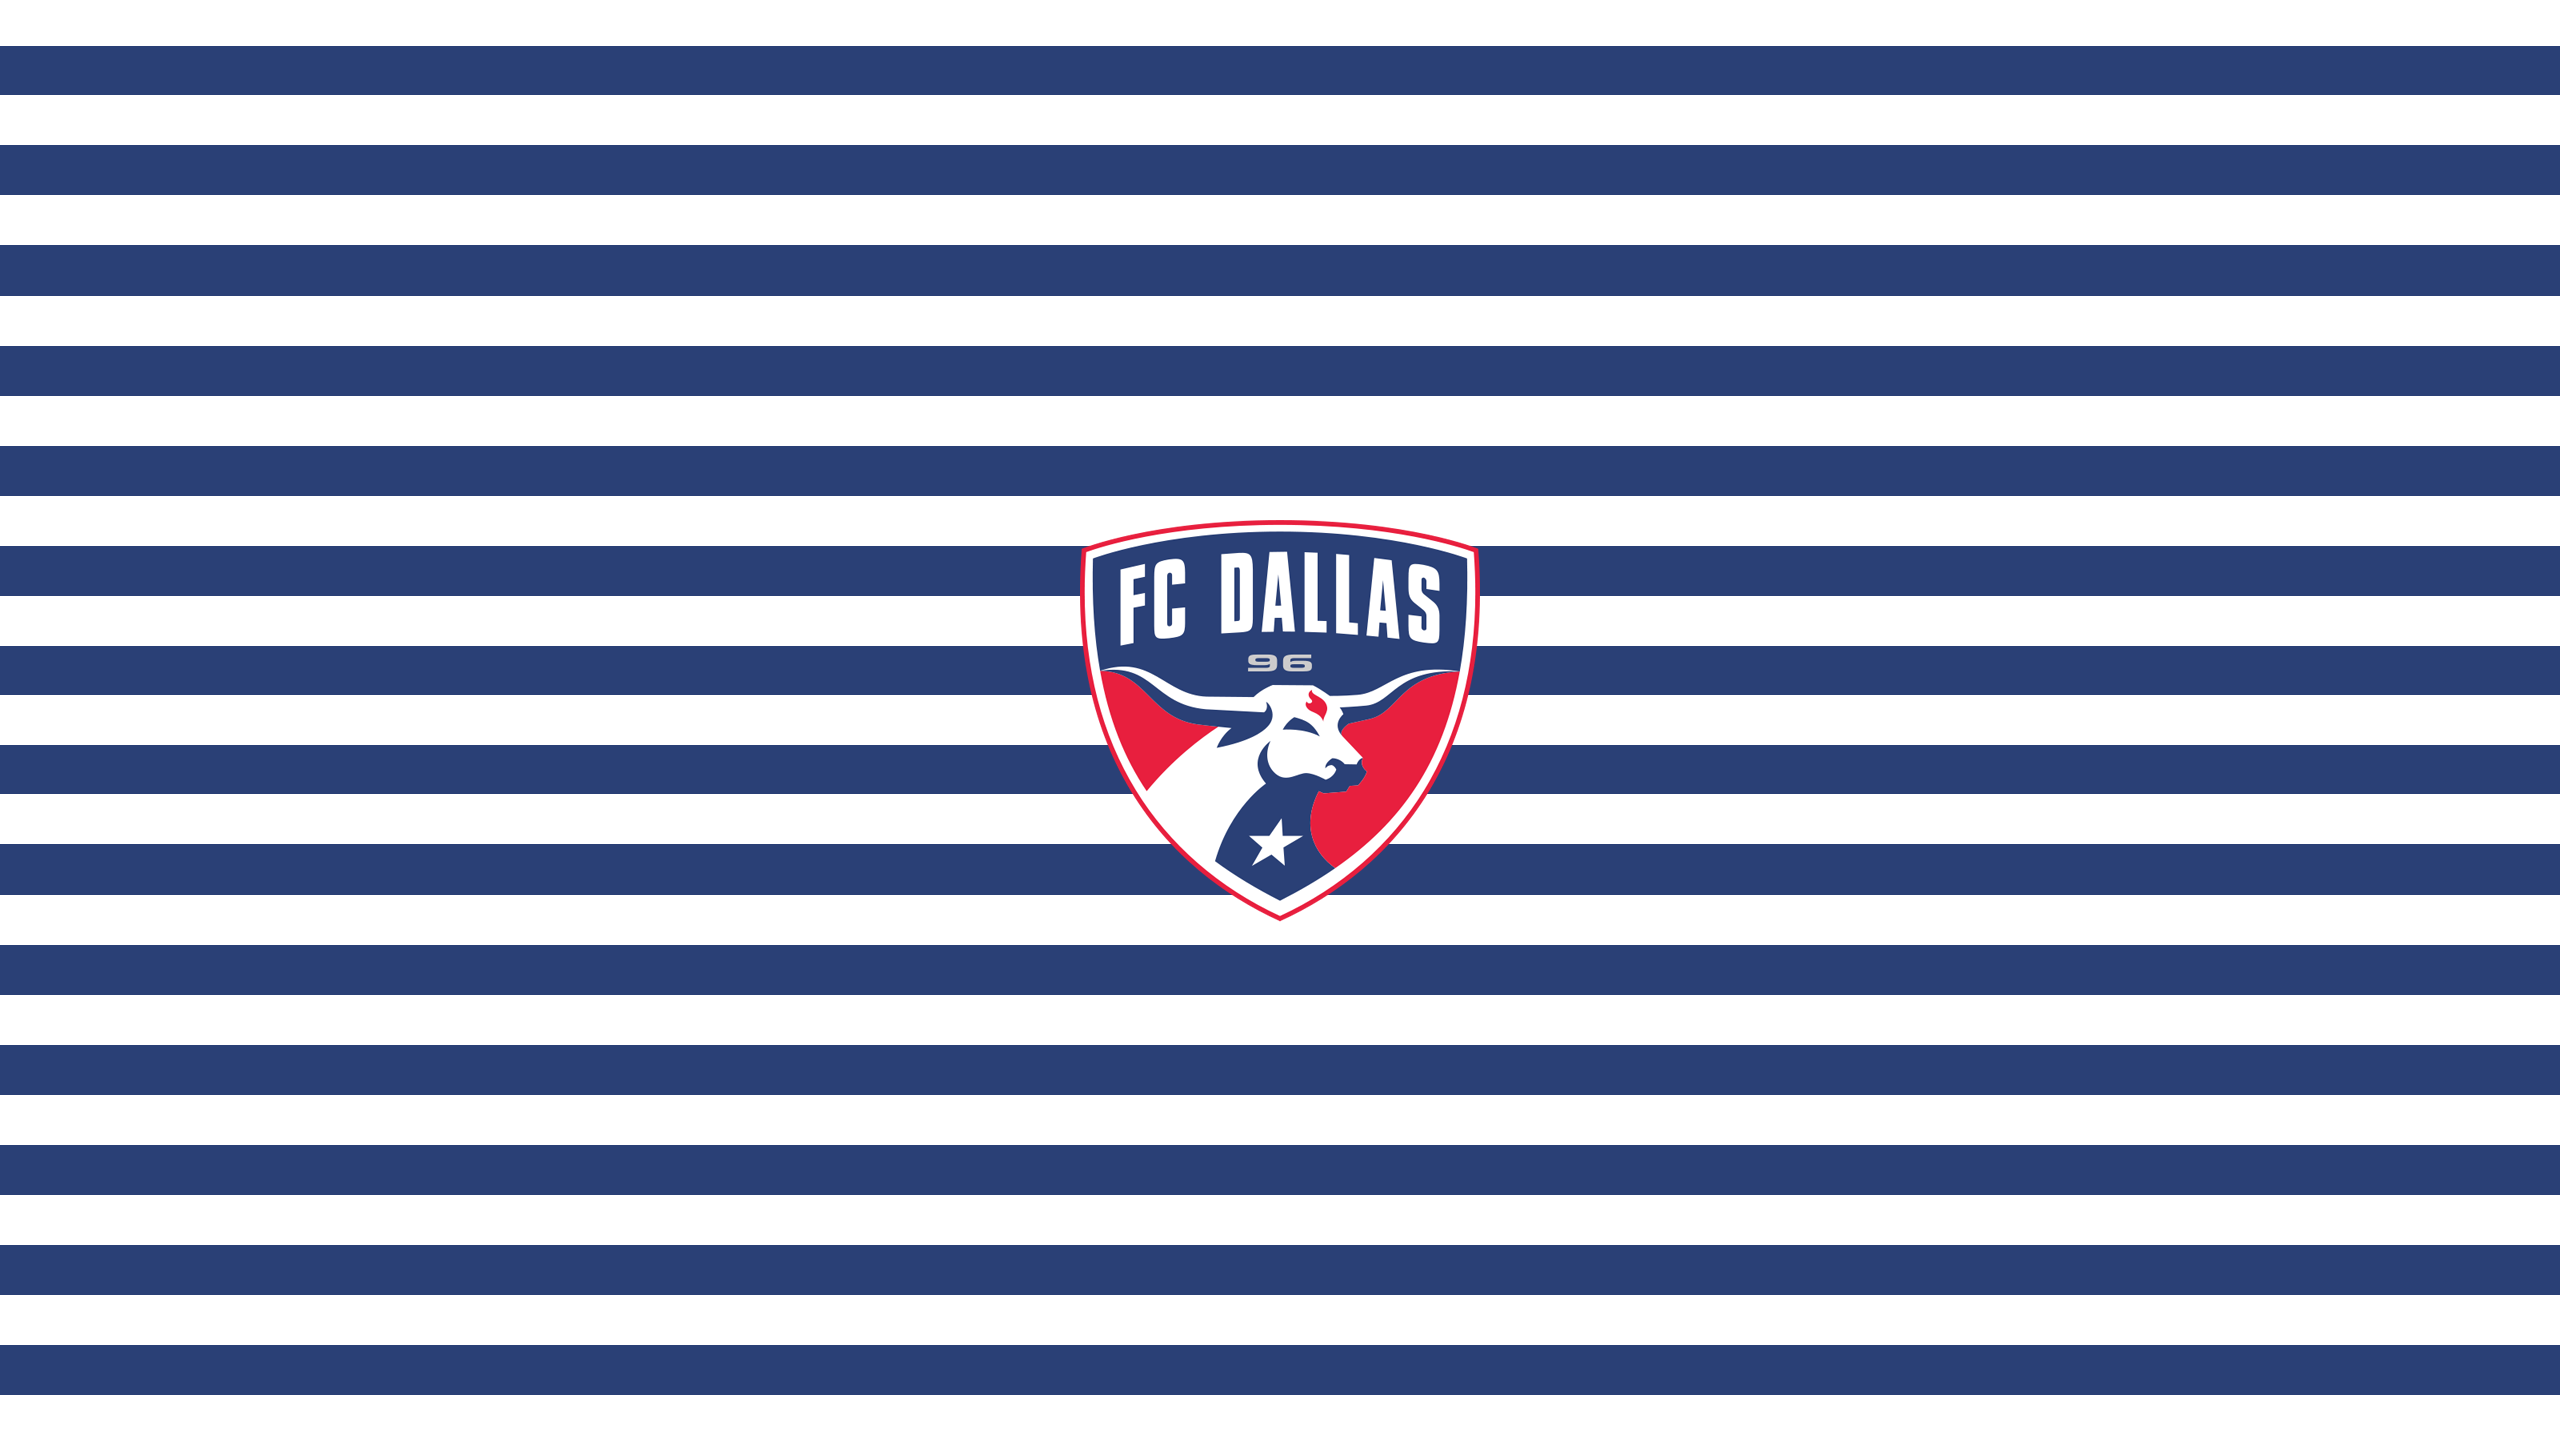 FC Dallas Wallpaper - WallpaperSafari - Fc Dallas PNG